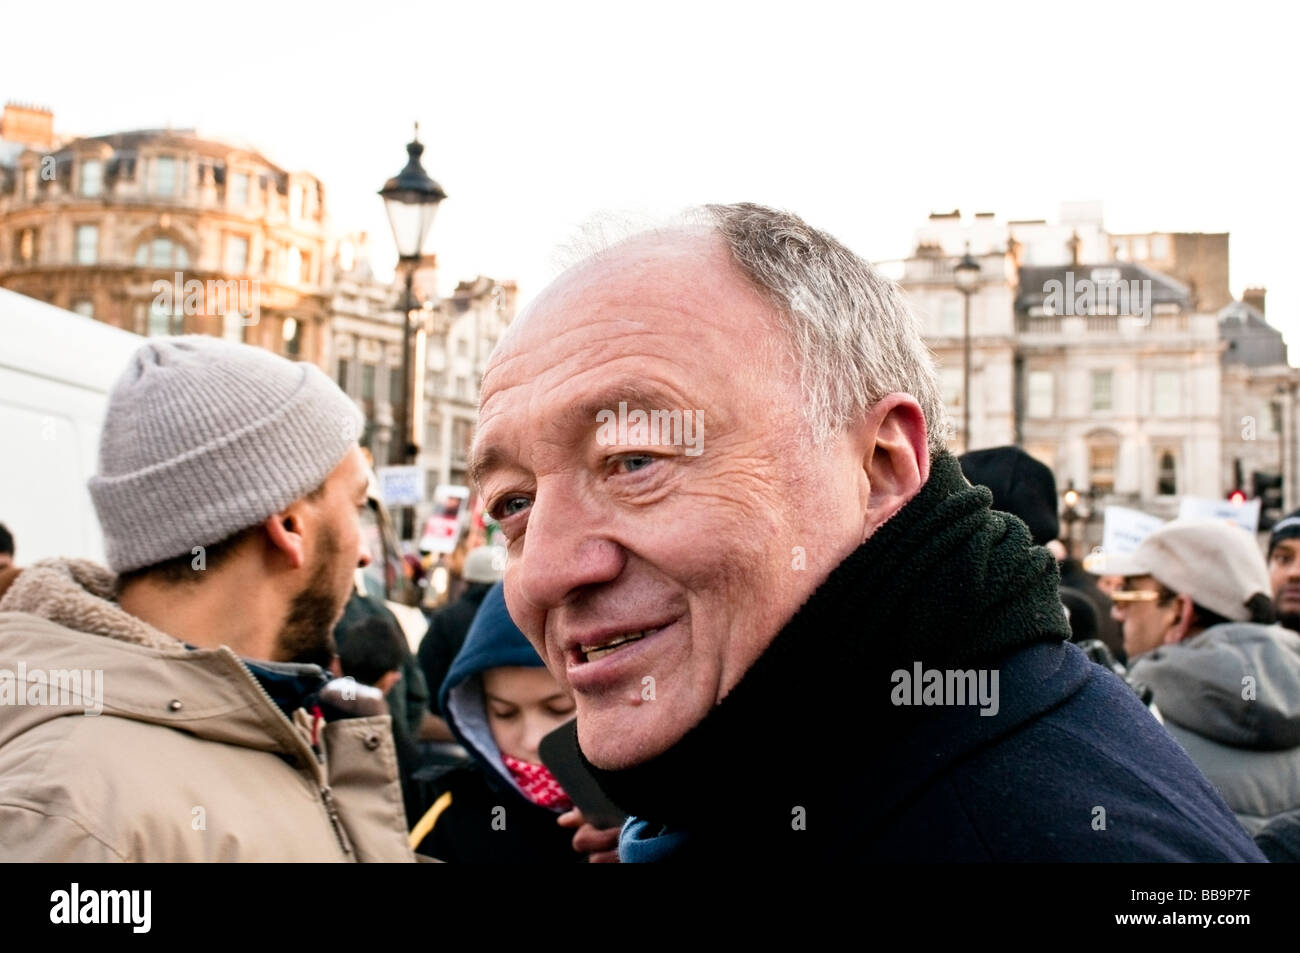 Former Mayor of London, Ken Livingstone is giving his support to protesters on Trafalgar square - Stock Image